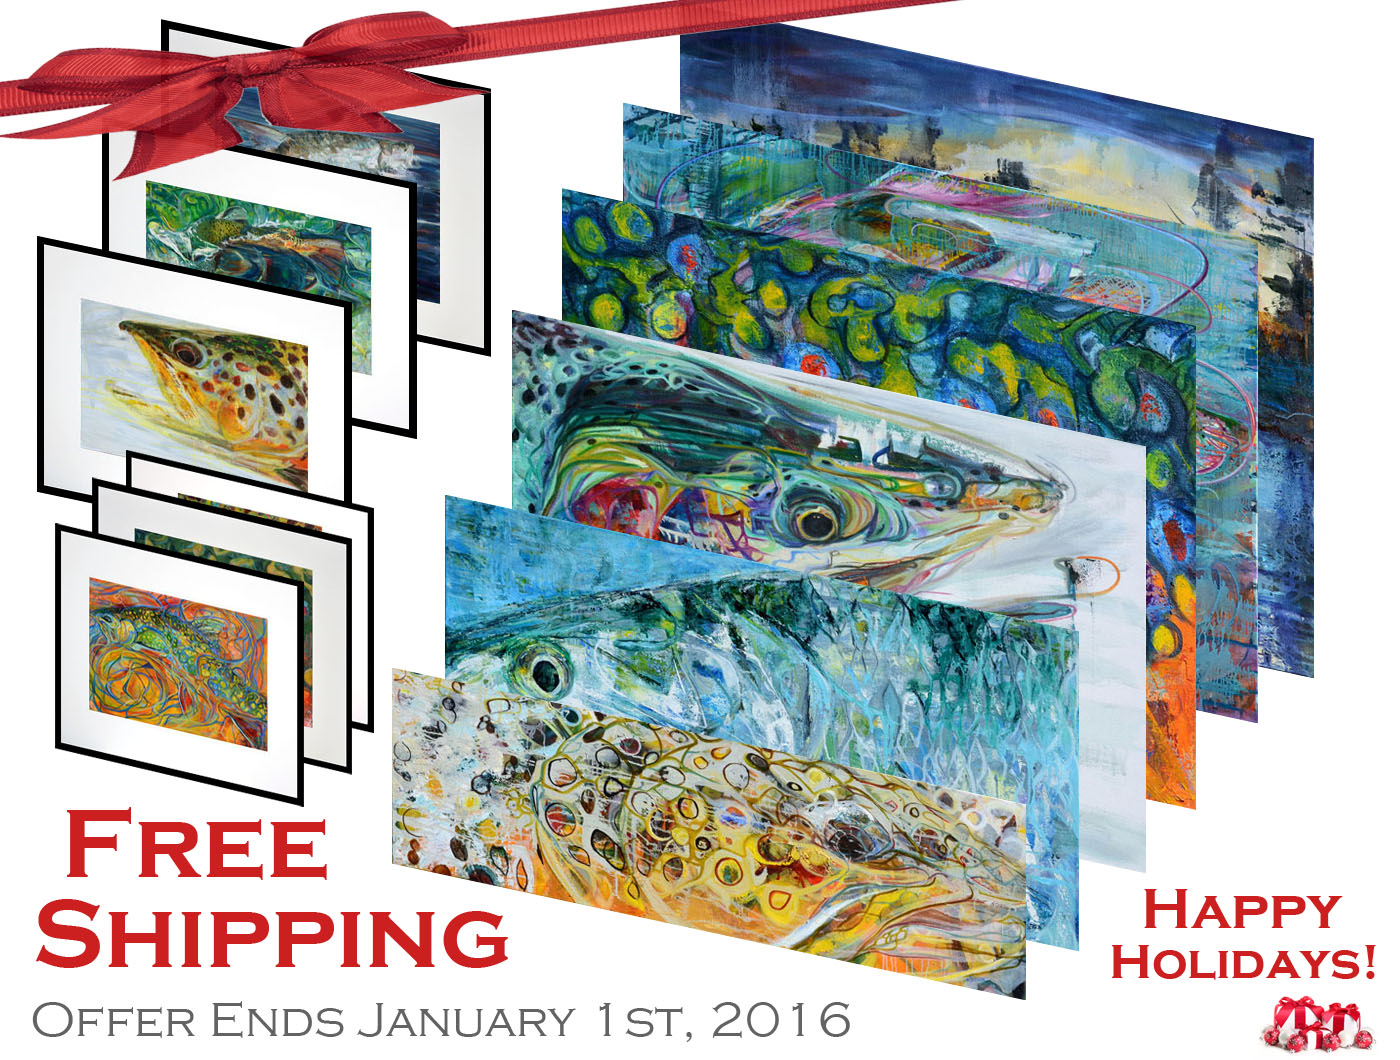 Holday Free Shipping